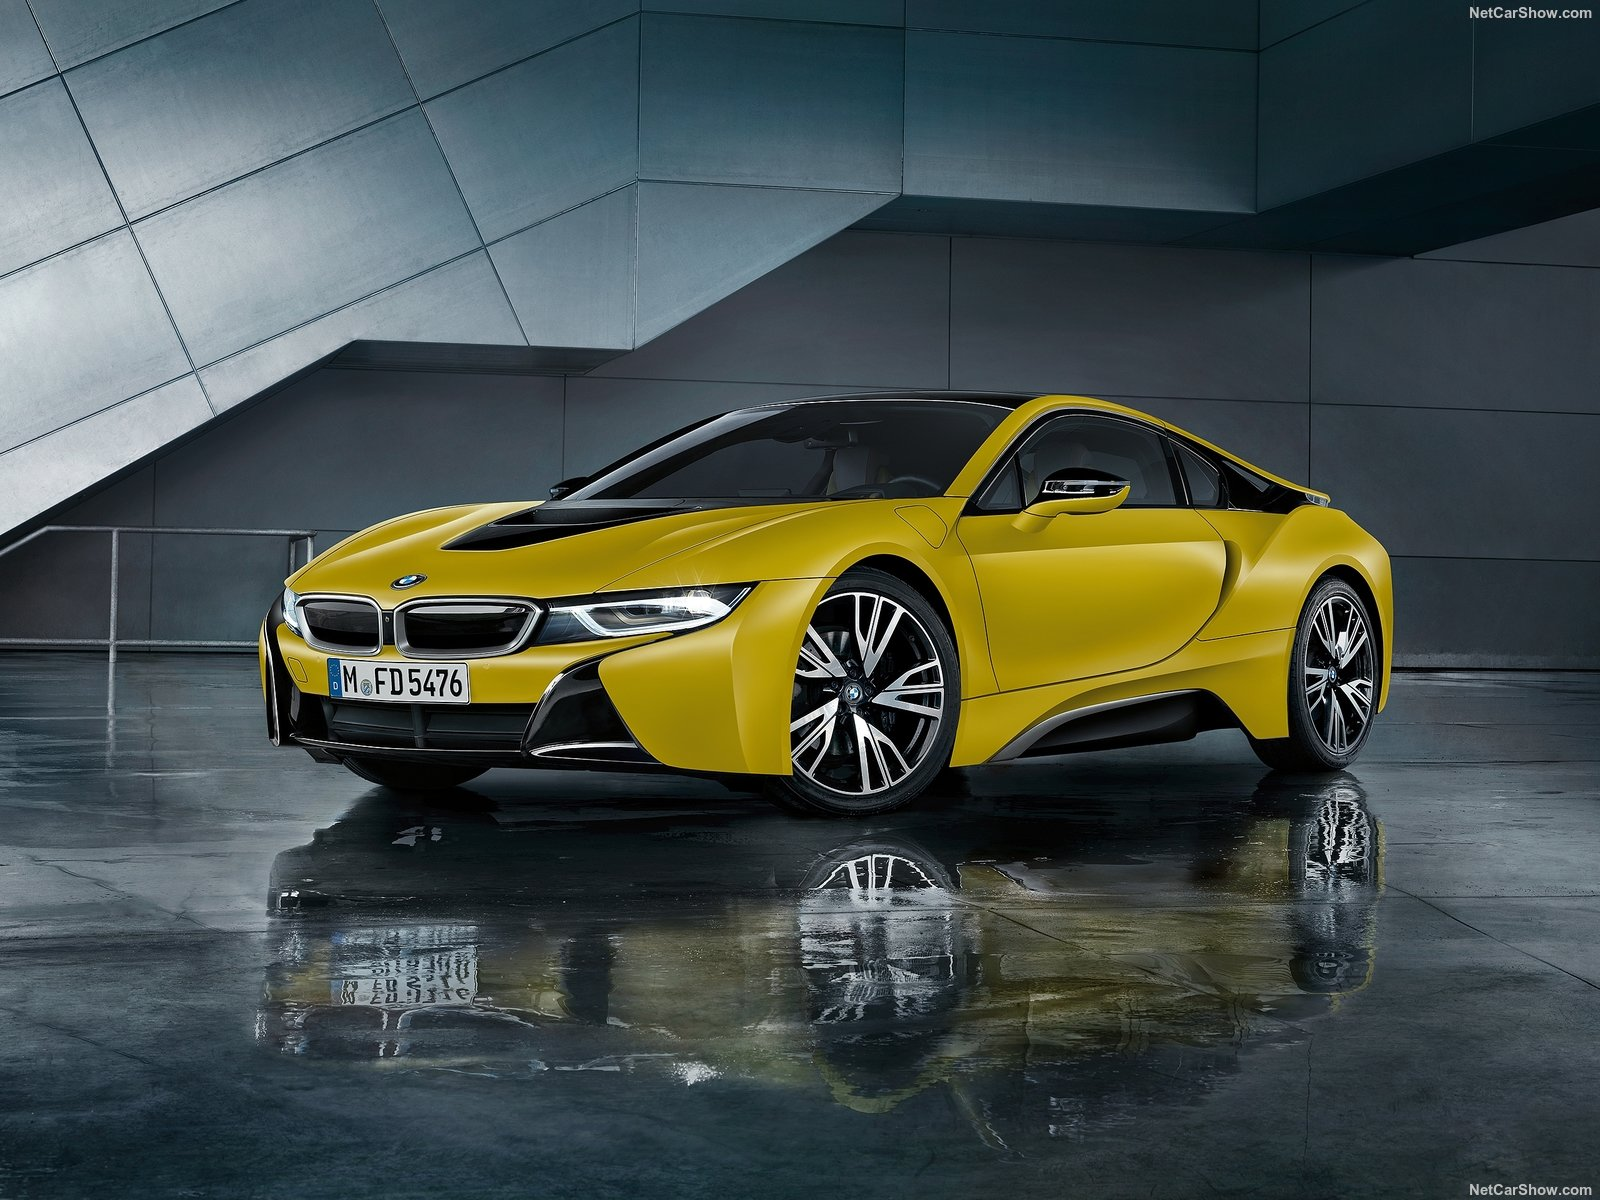 bmw i8 2019 prices in pakistan, pictures & reviews | pakwheels